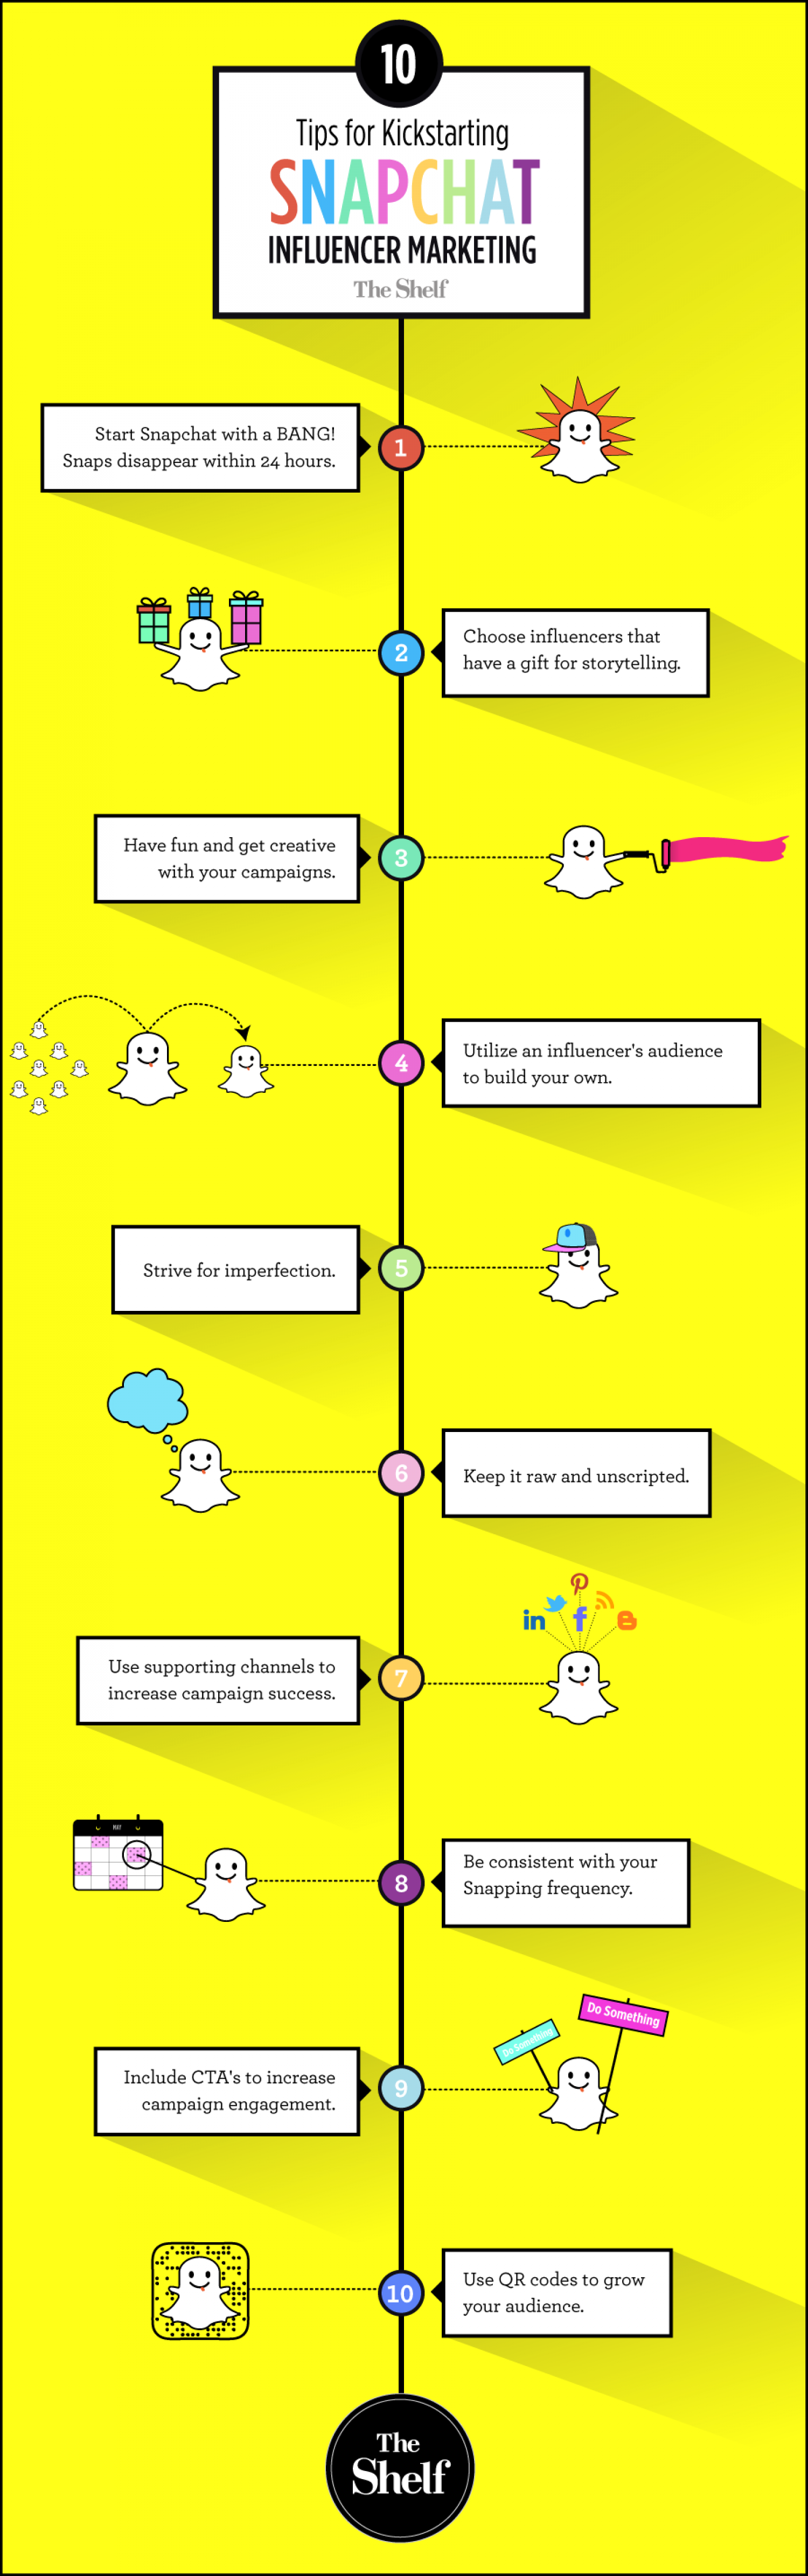 10 Tips for Doing Snapchat Influencer Marketing Campaigns Infographic